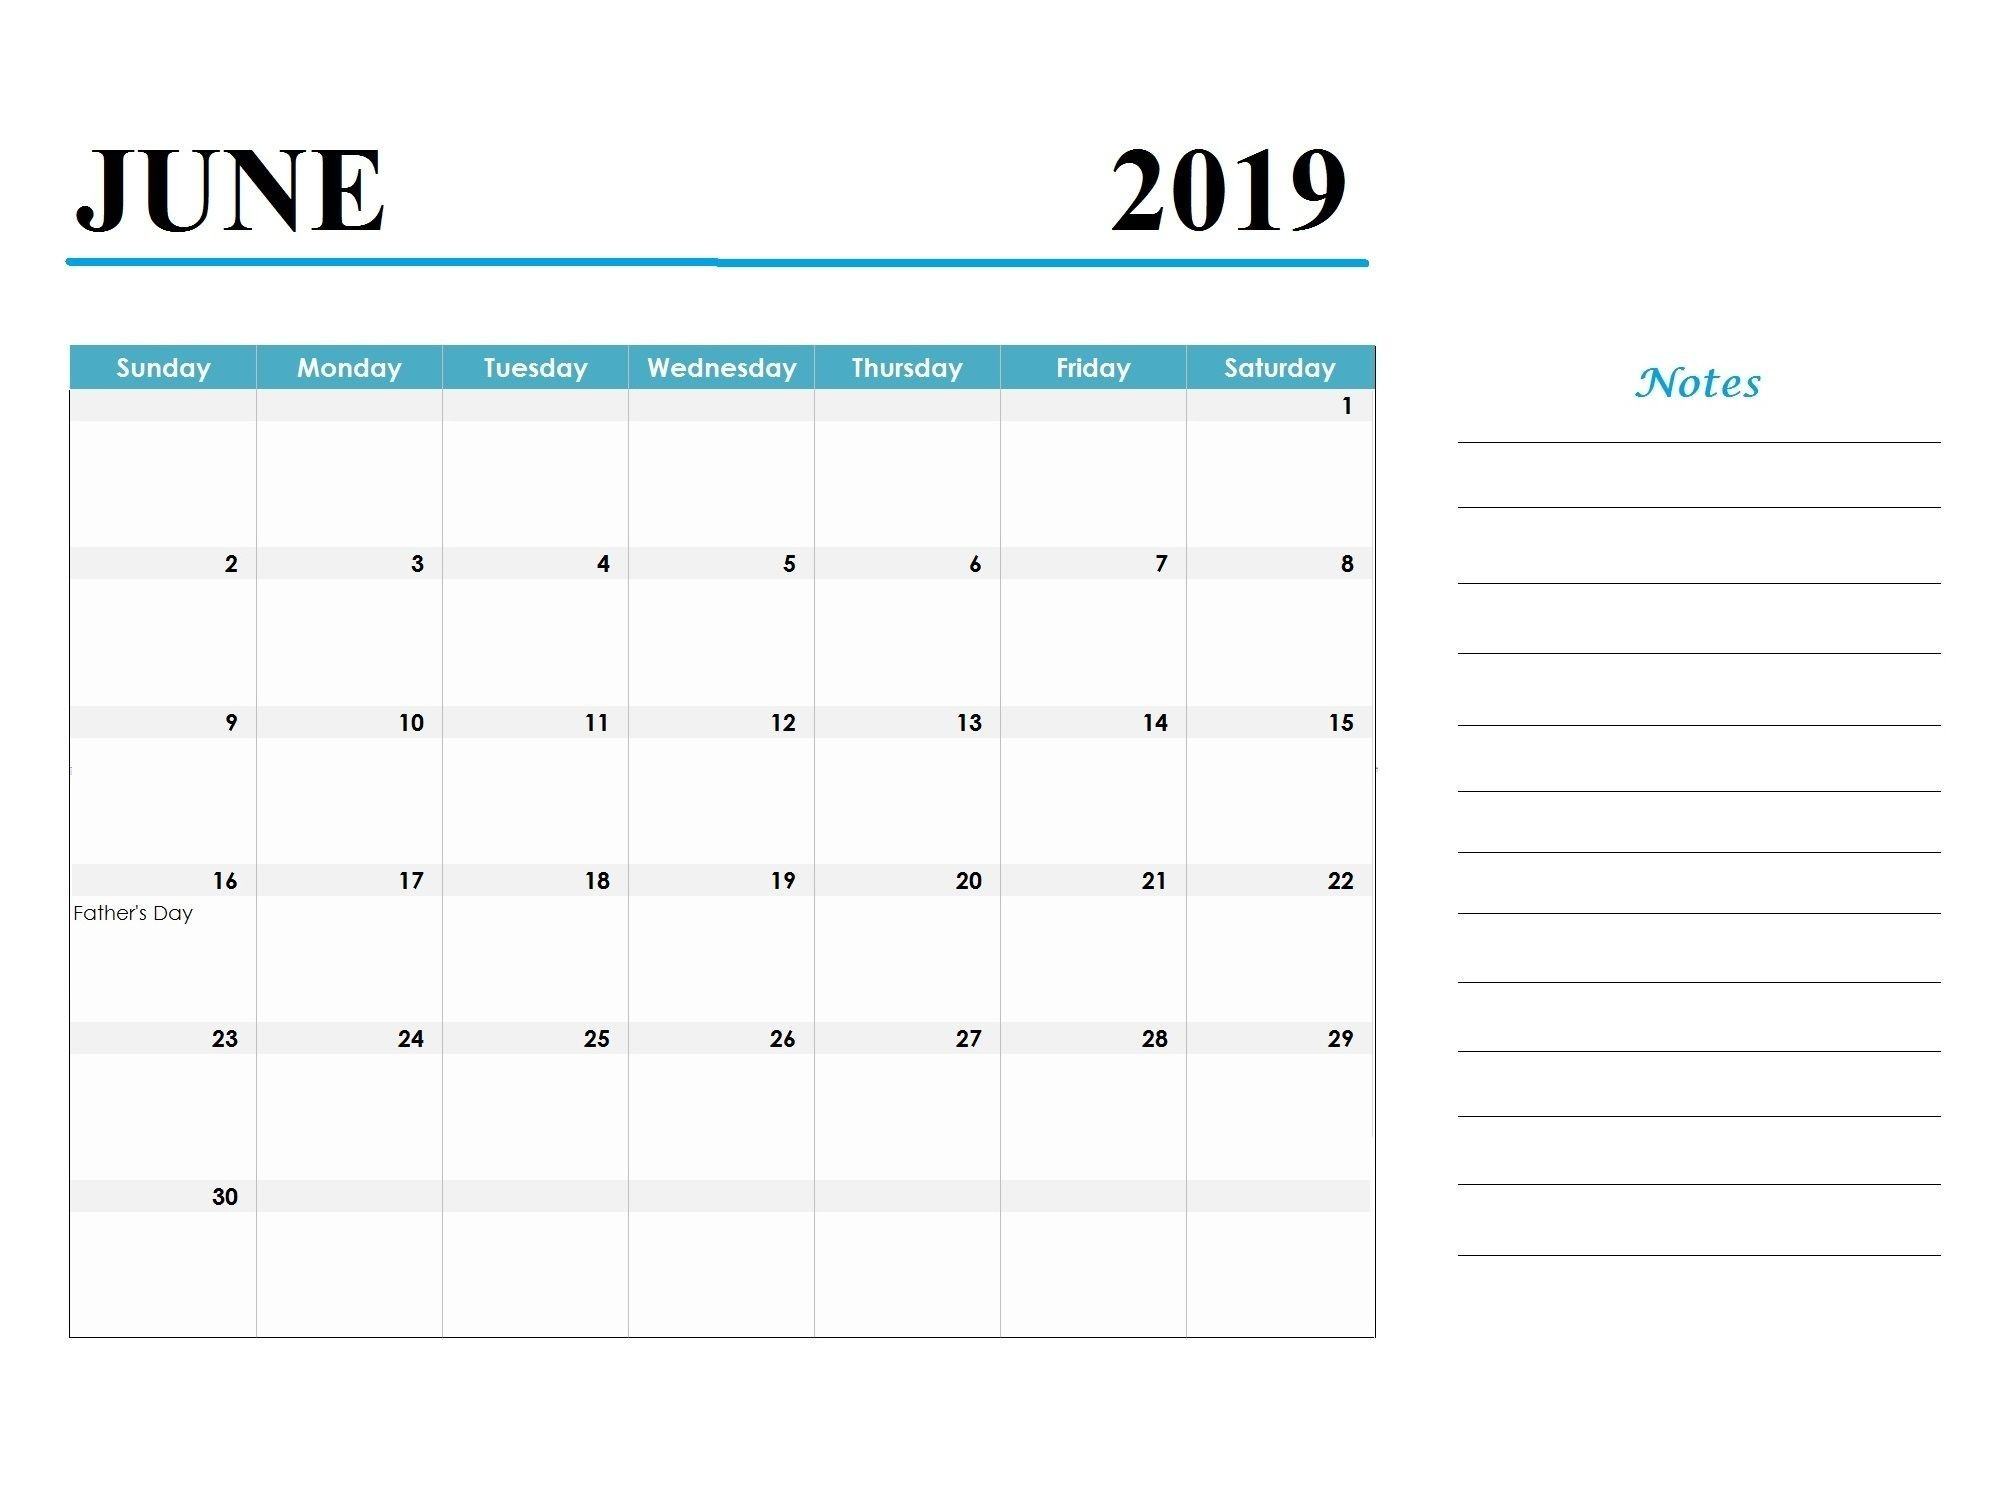 Printable June 2019 Calendar Template Word Document-Printable Calendar Template With Notes